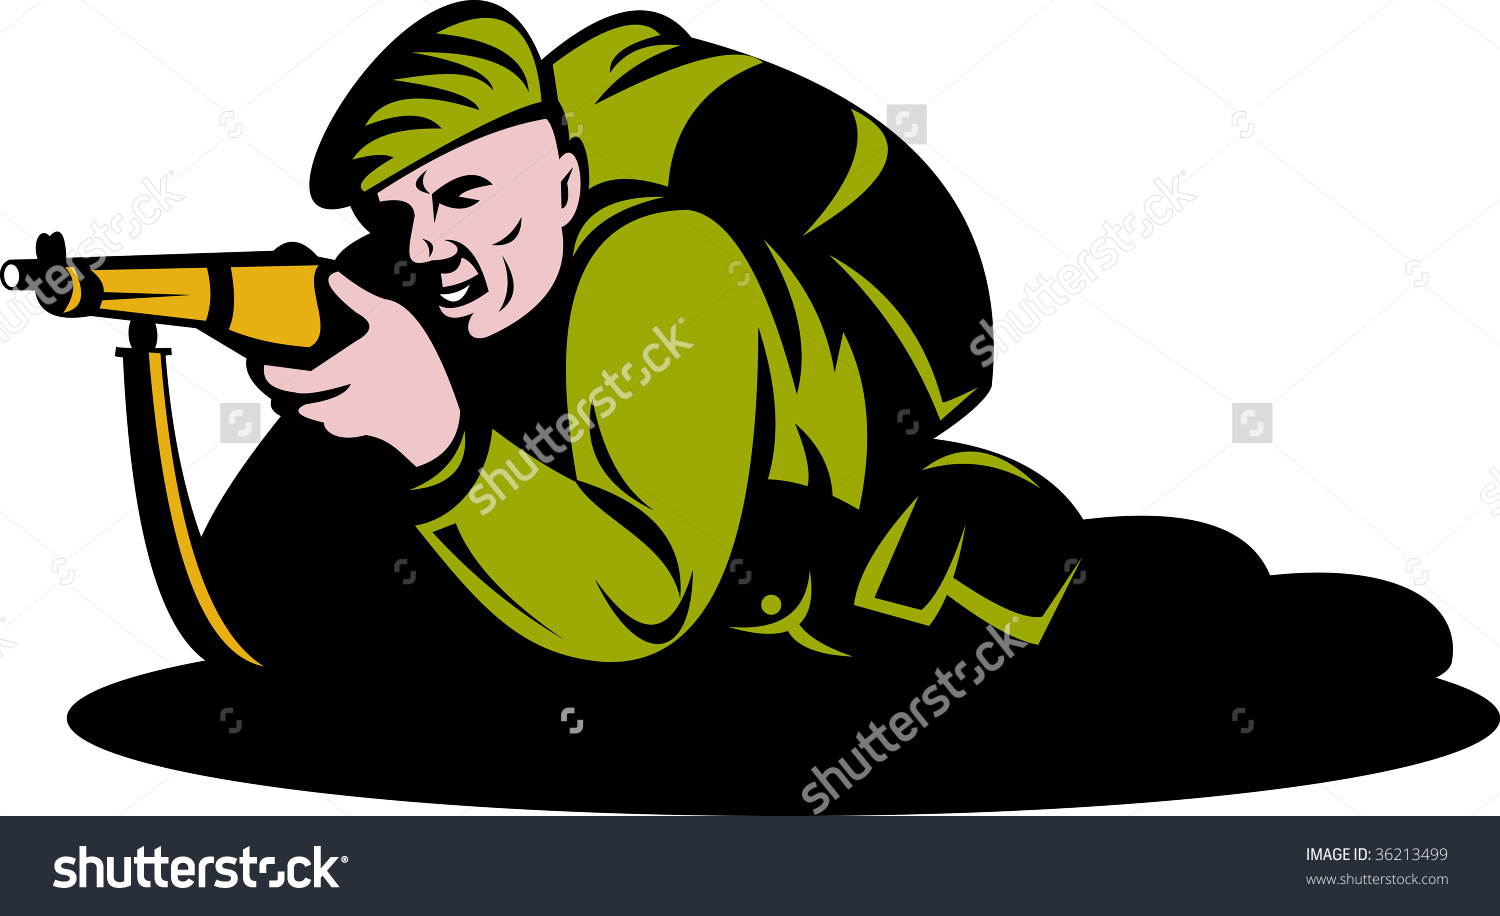 World War Two Commando Soldier Aiming A Rifle Stock Photo 36213499.